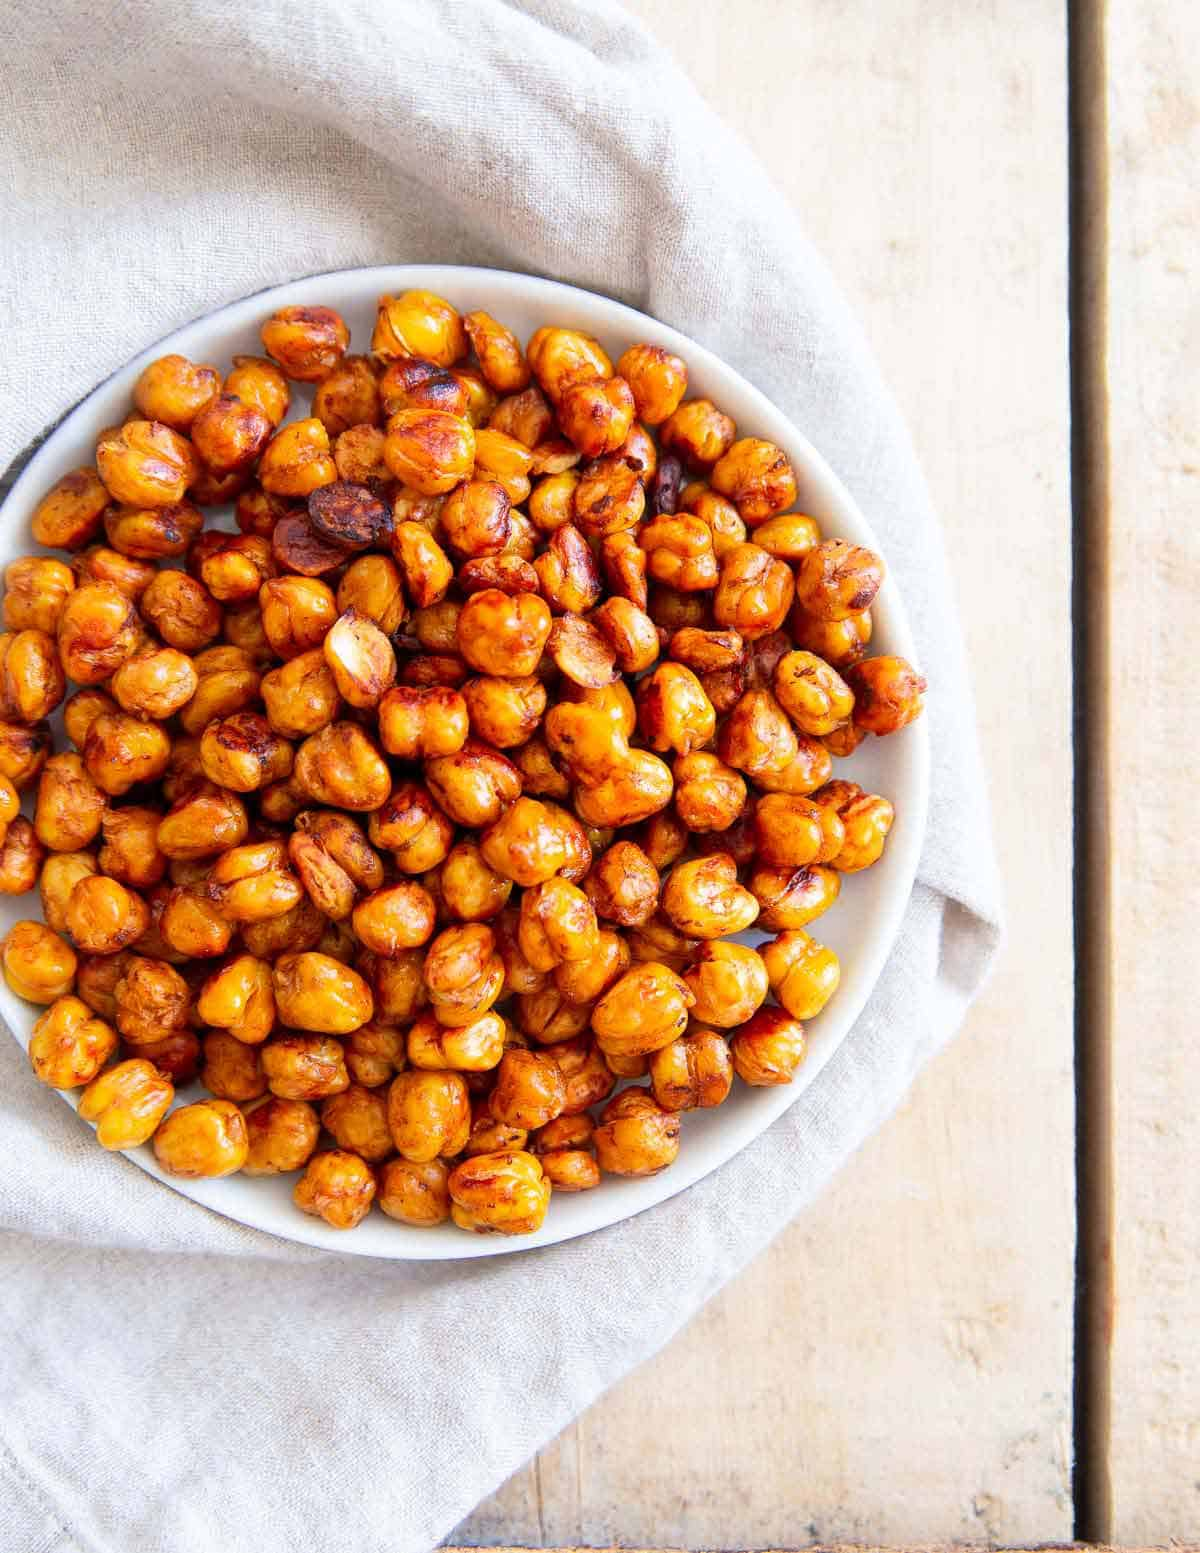 These easy, crispy, roasted BBQ chickpeas make a delicious option for healthy snacking or the perfect crunchy topper for salads.